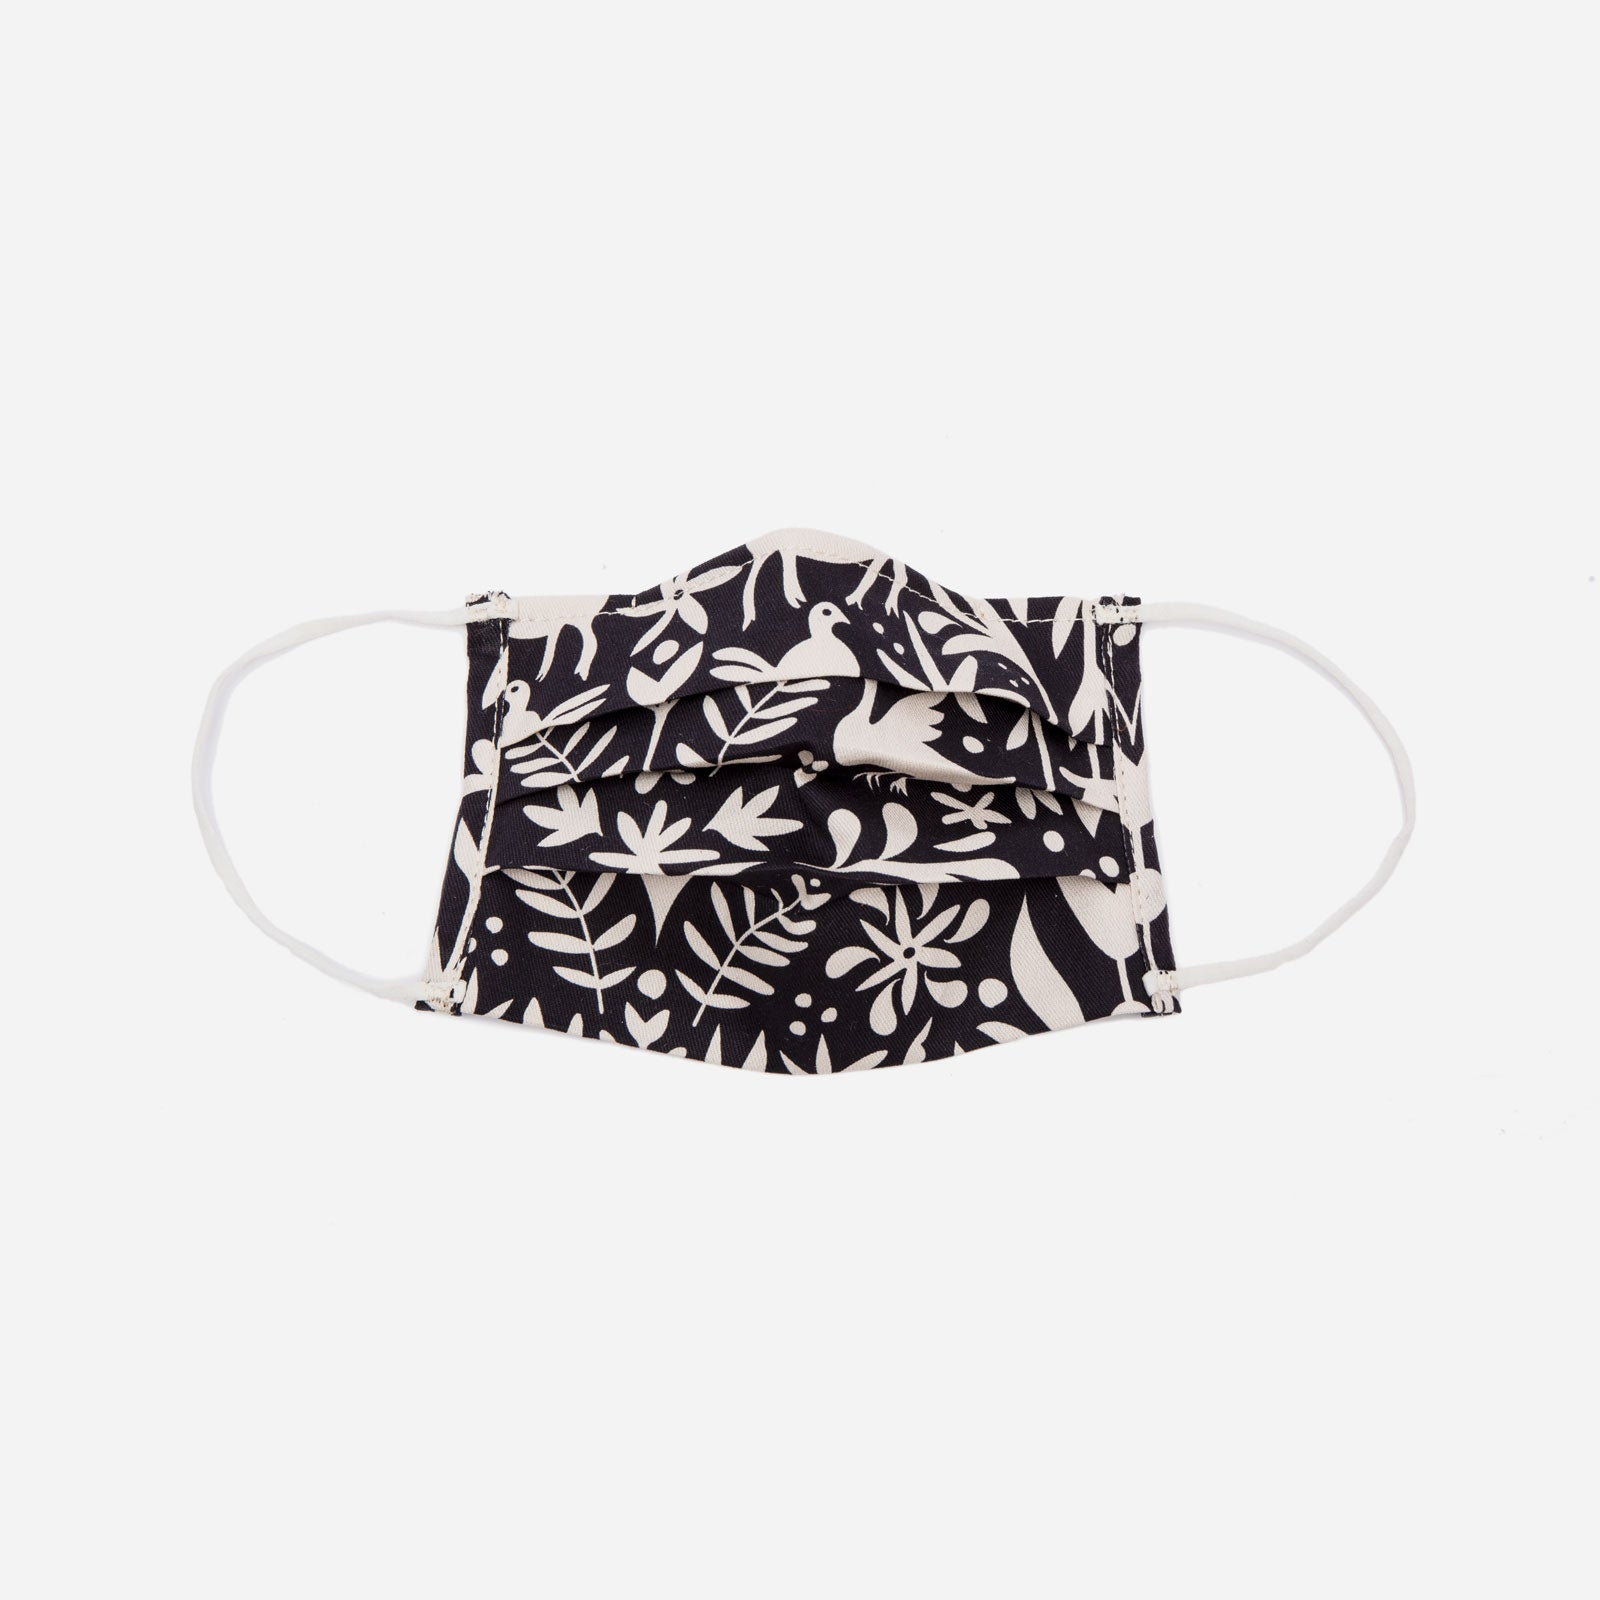 Folded Mask Veracruz Print Black